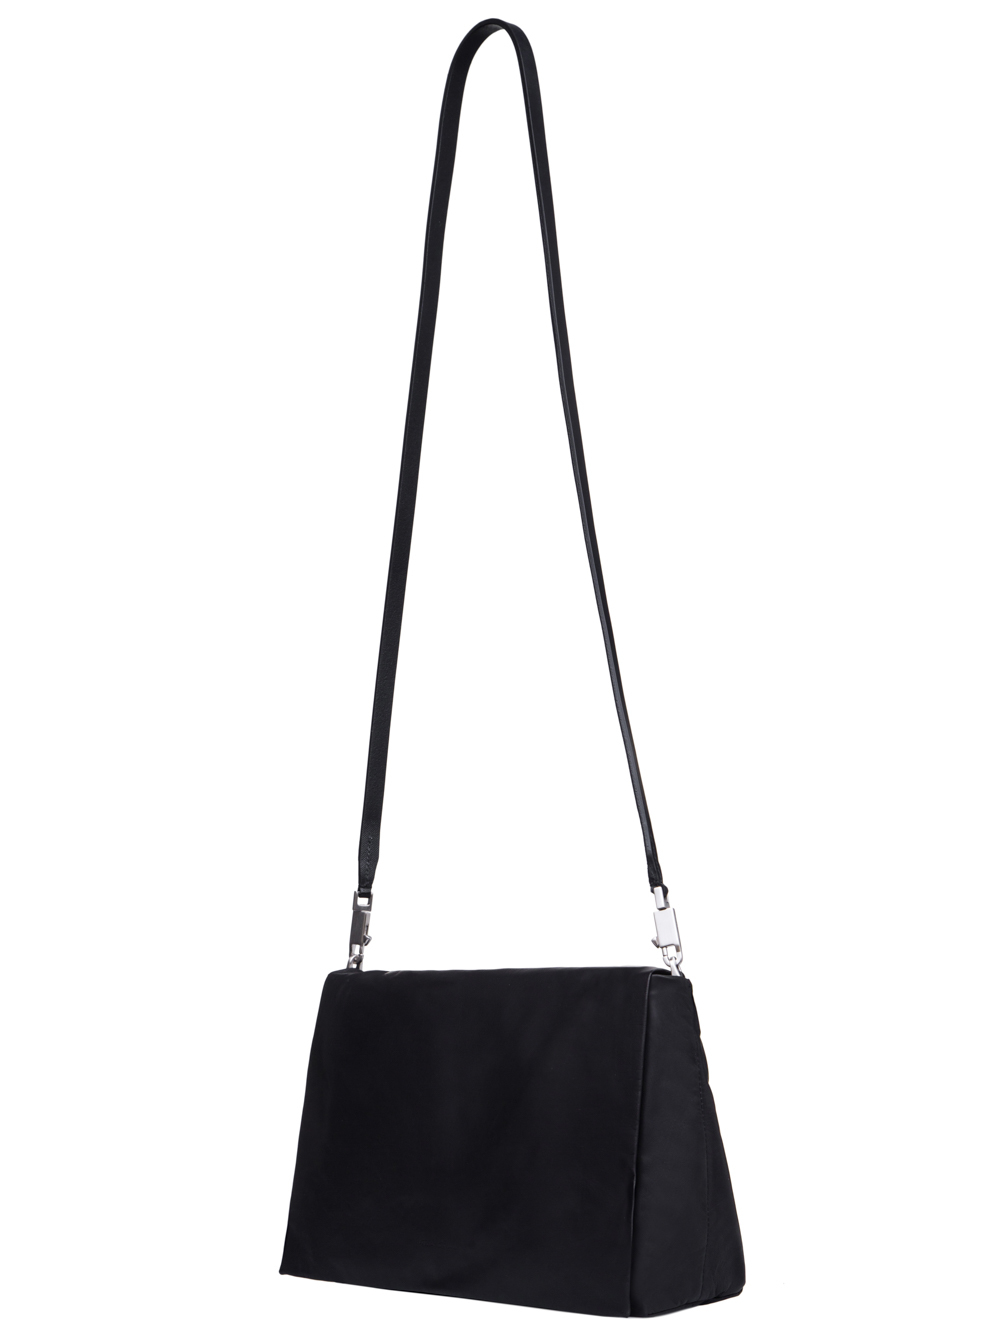 RICK OWENS FW18 SISYPHUS MEDIUM FLAP ADRI BAG IN BLACK BABY CALF LEATHER